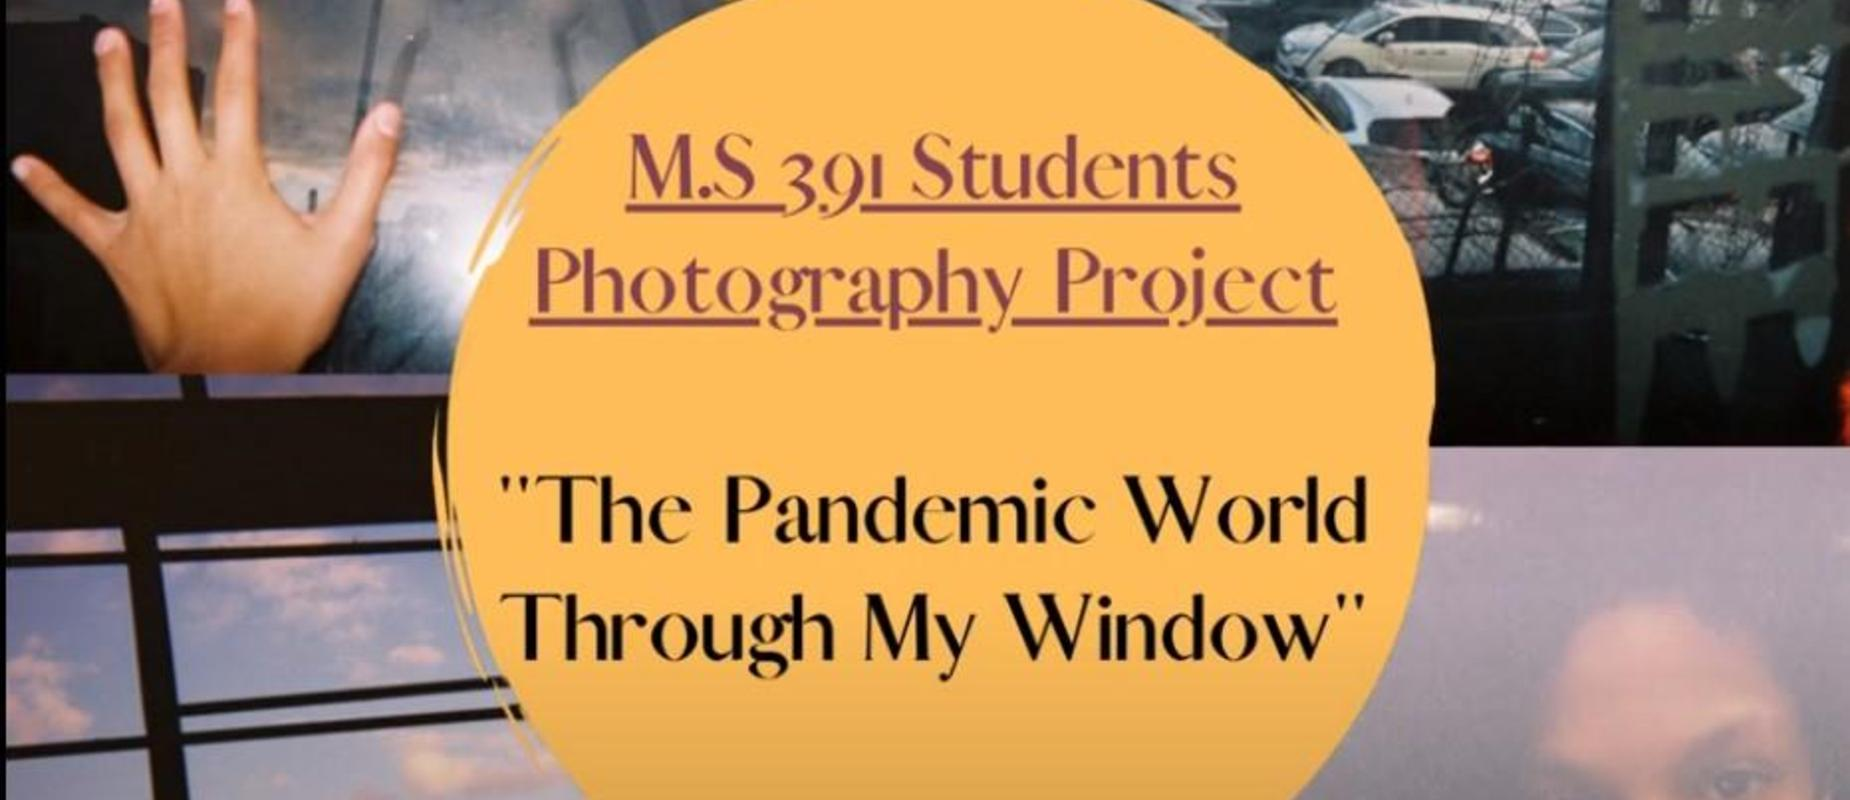 MS 391 Photography Project